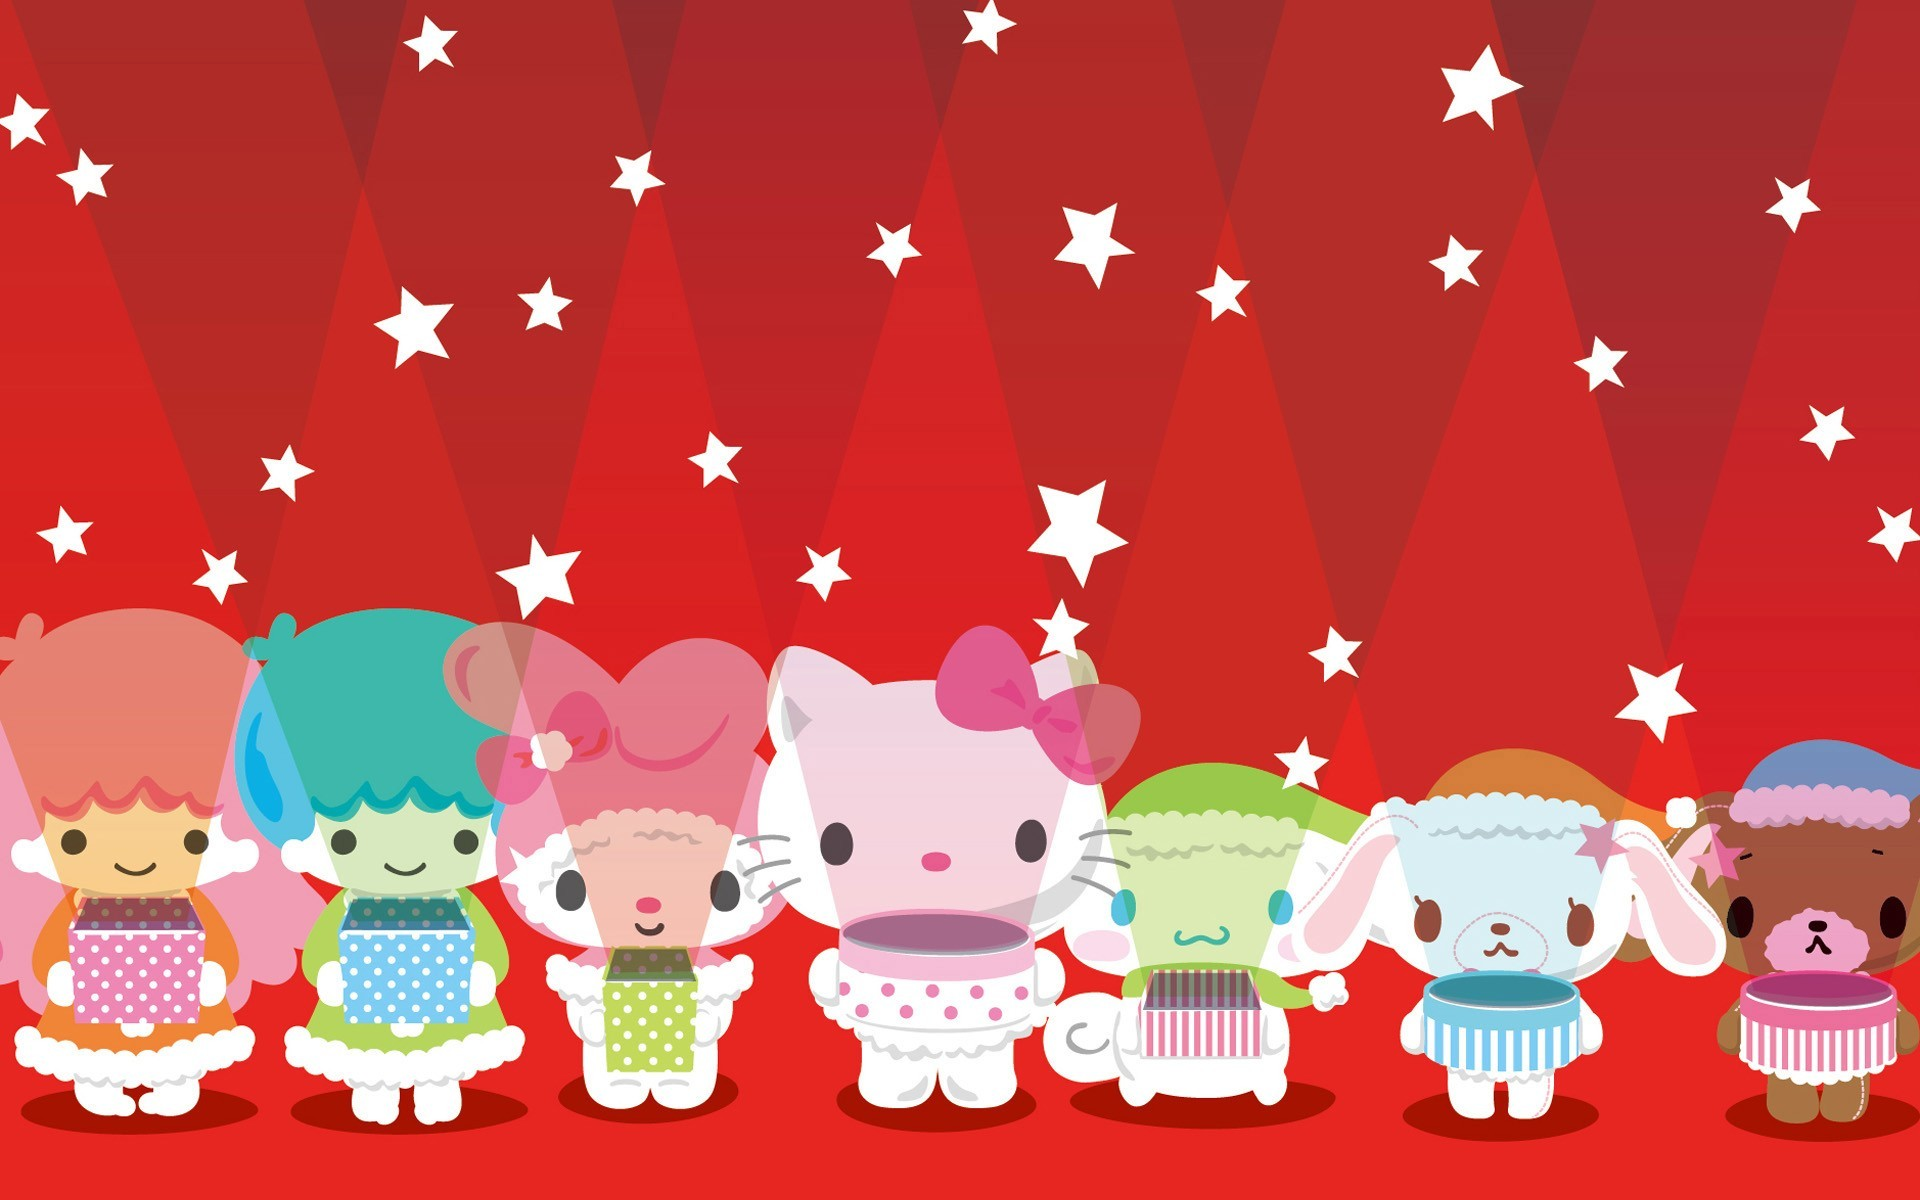 1920x1200 lights sanrio wallpaper background pixels widescreen hello christmas kitty  group character